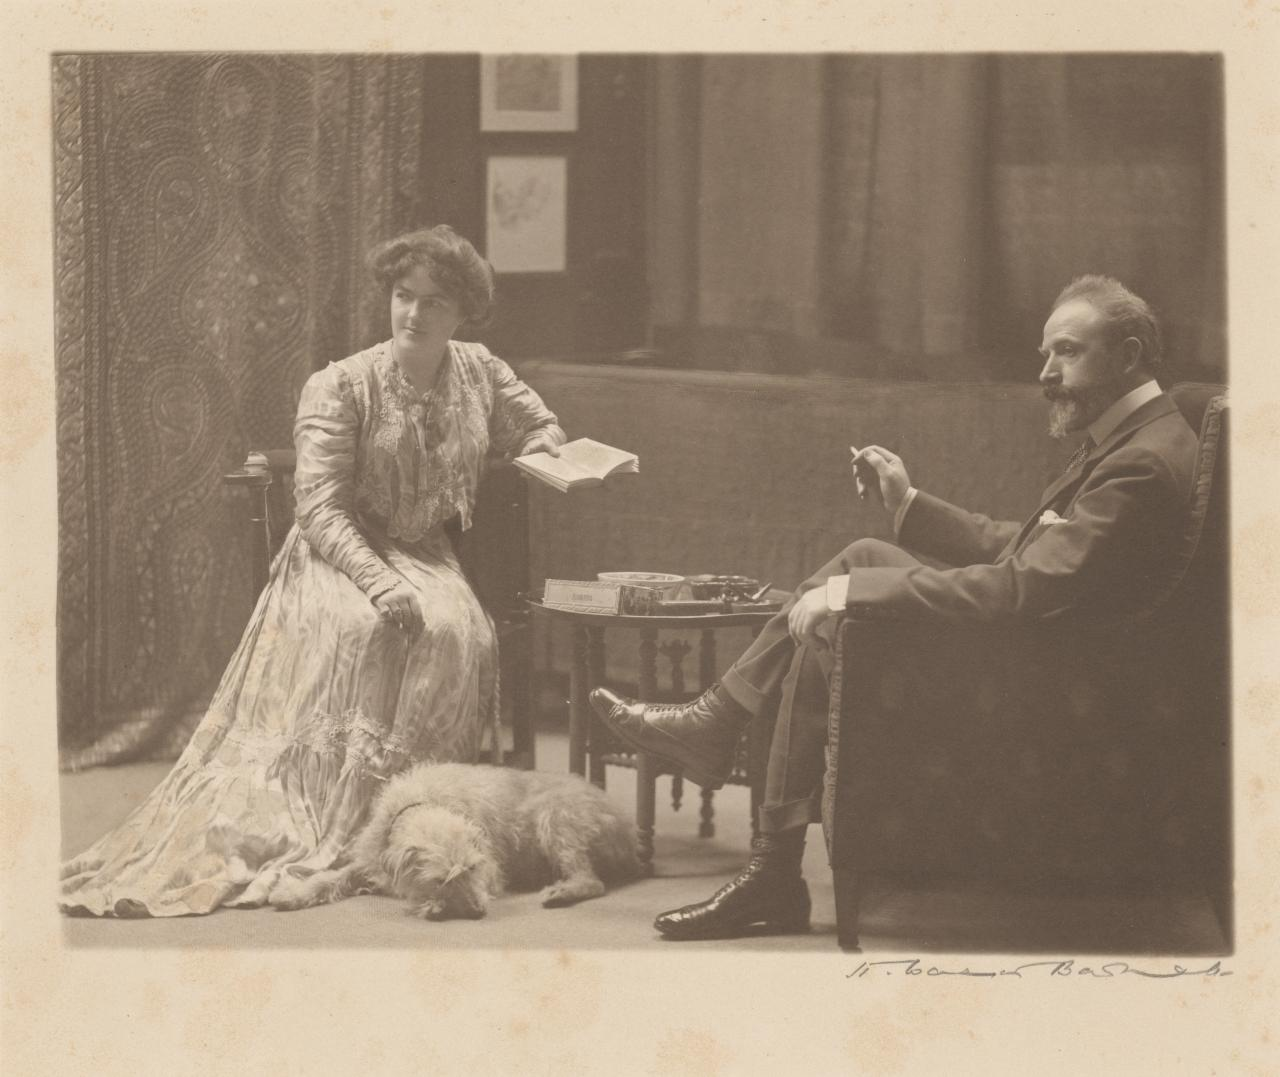 Arthur Streeton with Nora Streeton and Pat the dog